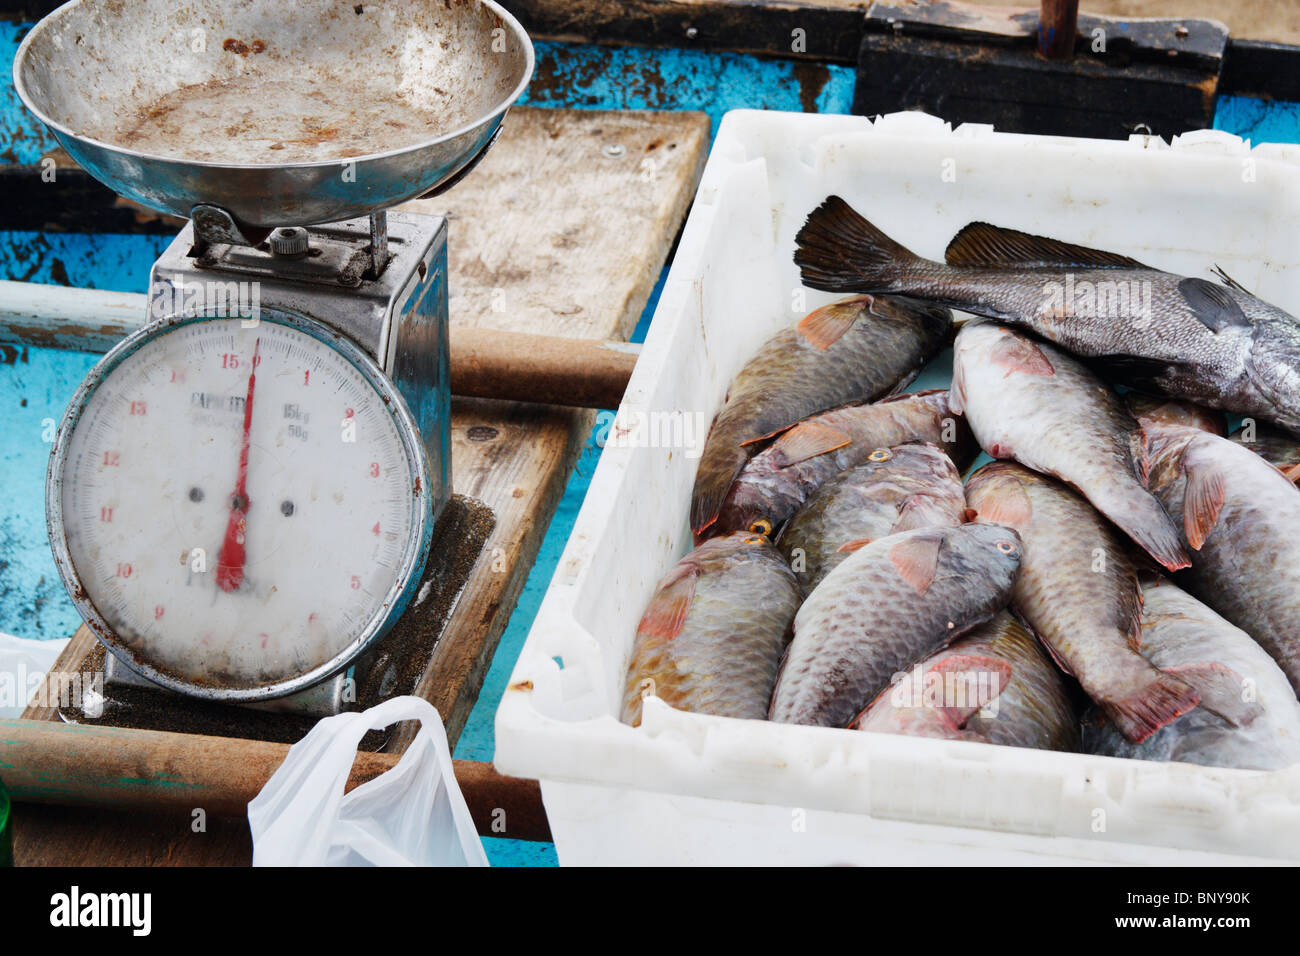 Fresh fish (Parrot fish, Vieja in Spanish) and scales on small fishing boat on beach in Las Palmas, Gran Canaria. - Stock Image